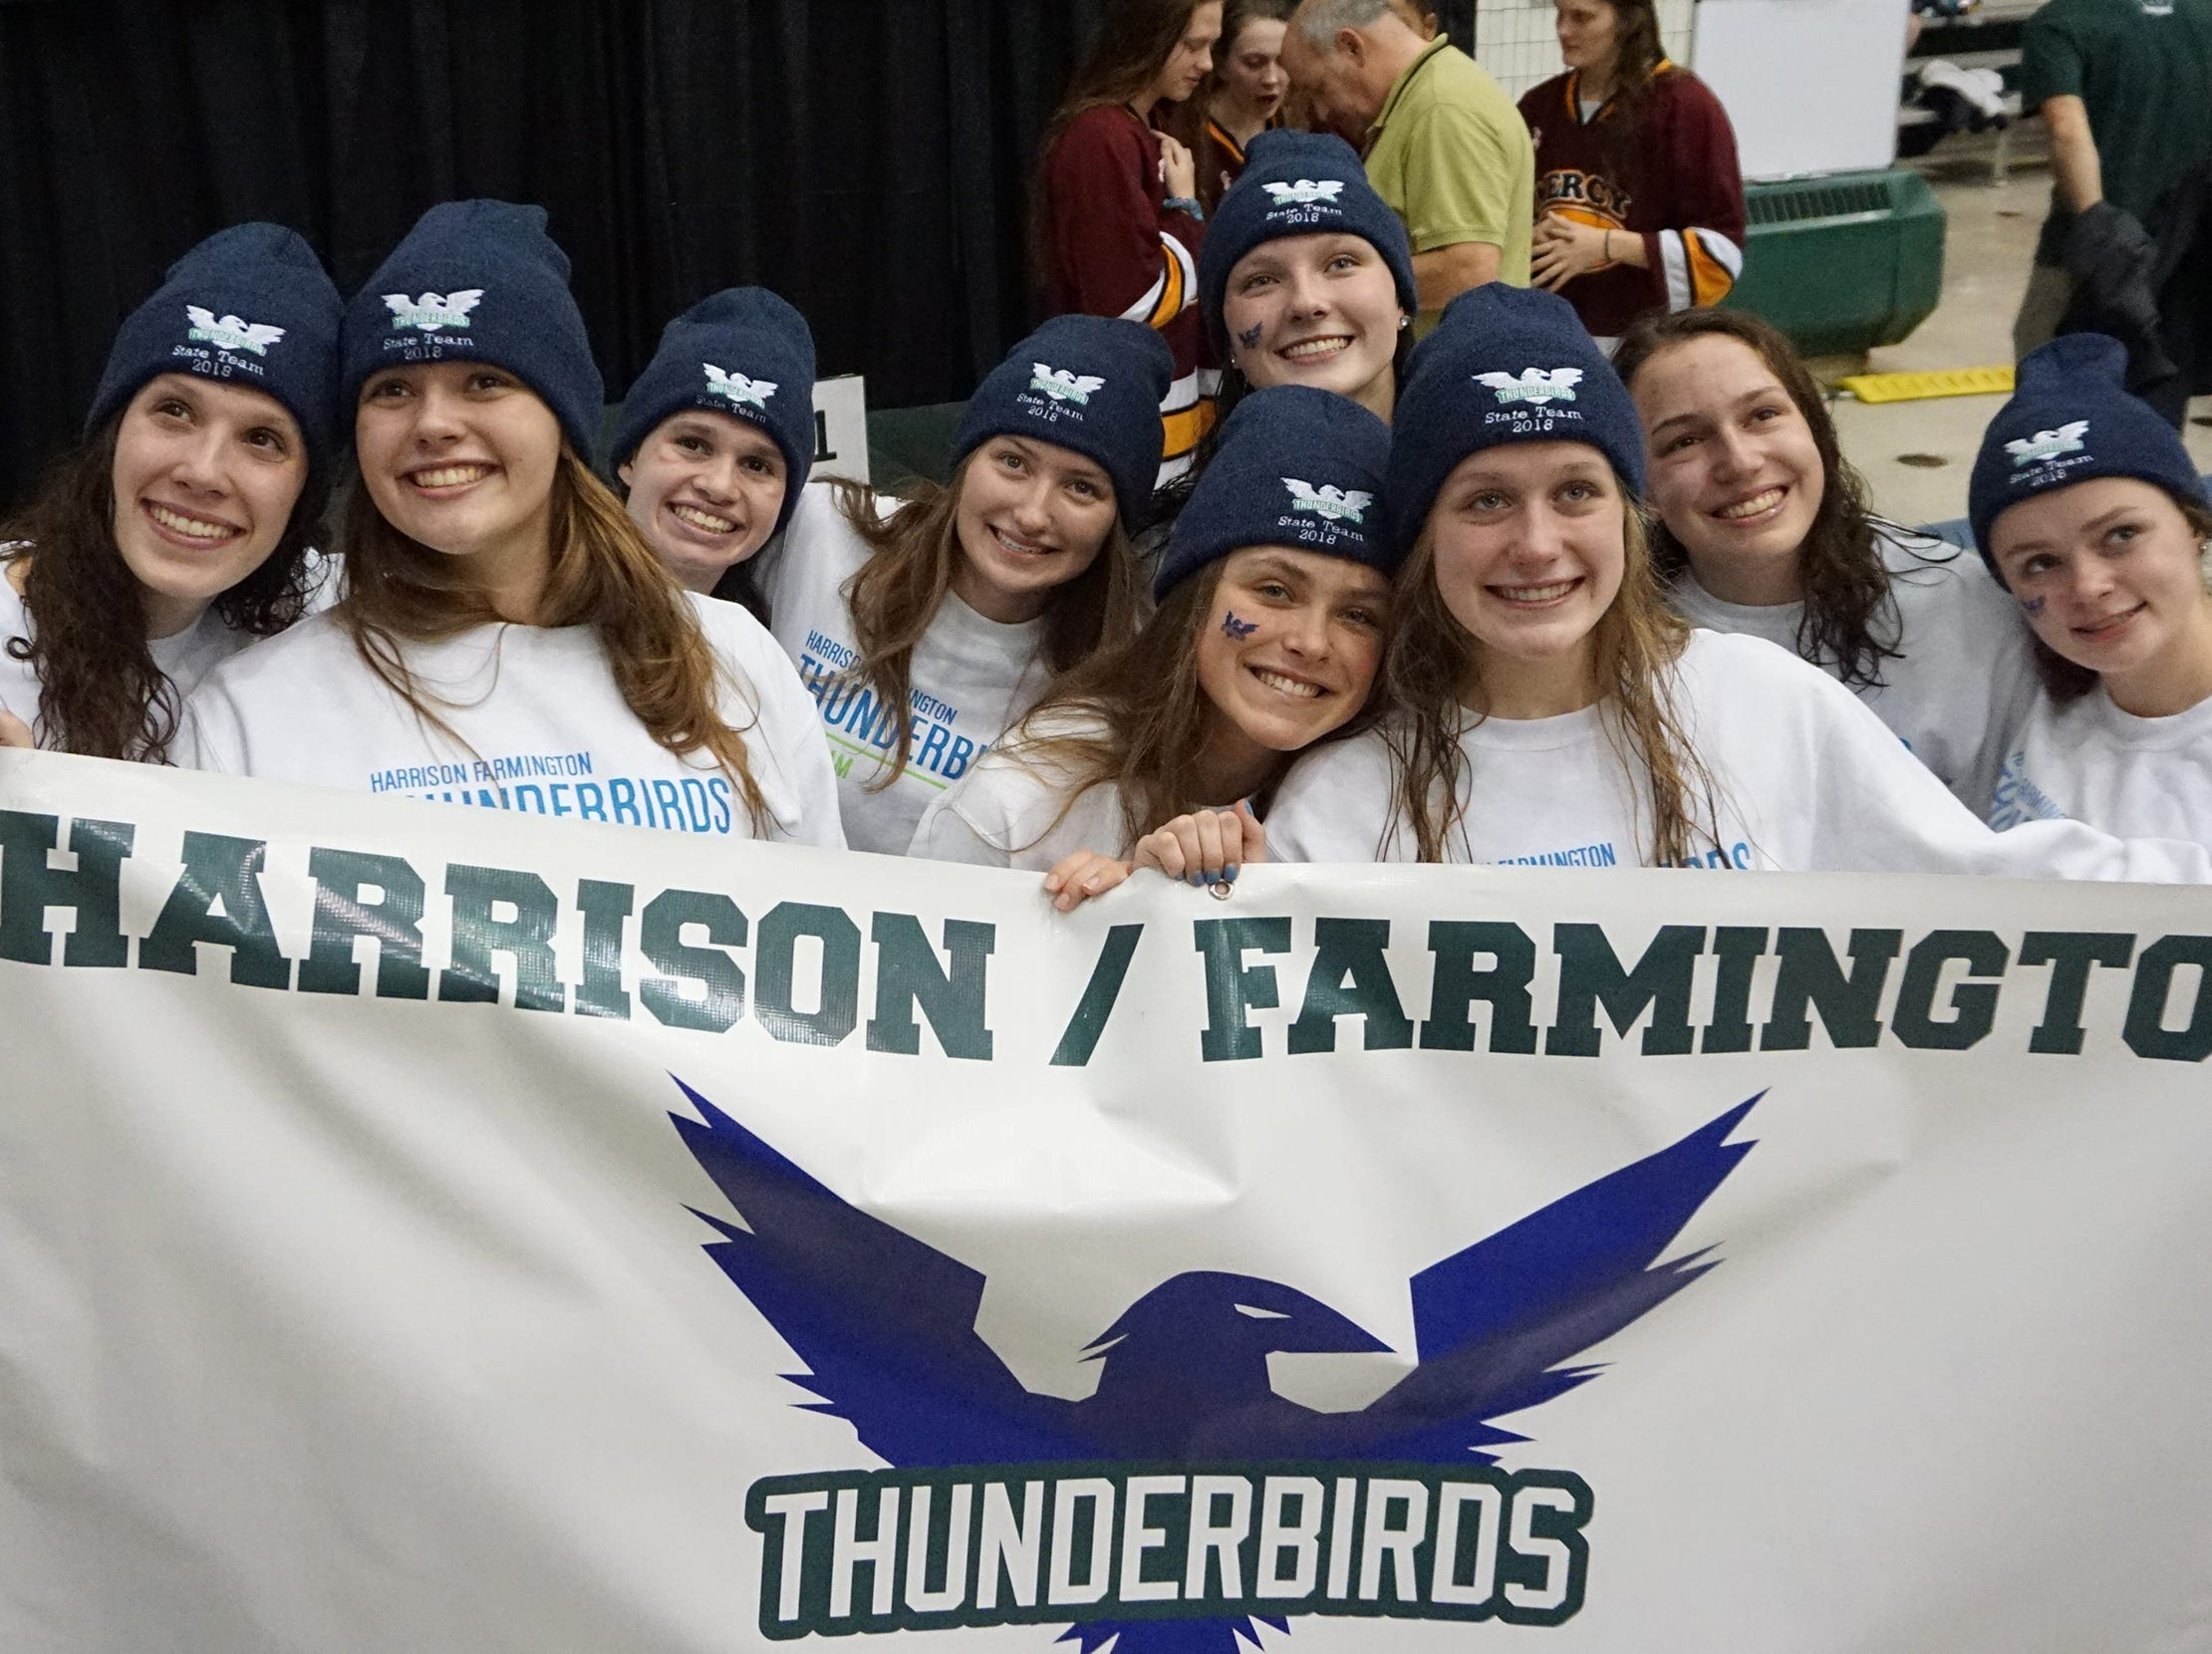 Harrison/Farmington swimmers pose for family and friends after the Division 1 girls swimming and diving championships held at Eastern Michigan University Nov. 17, 2018.